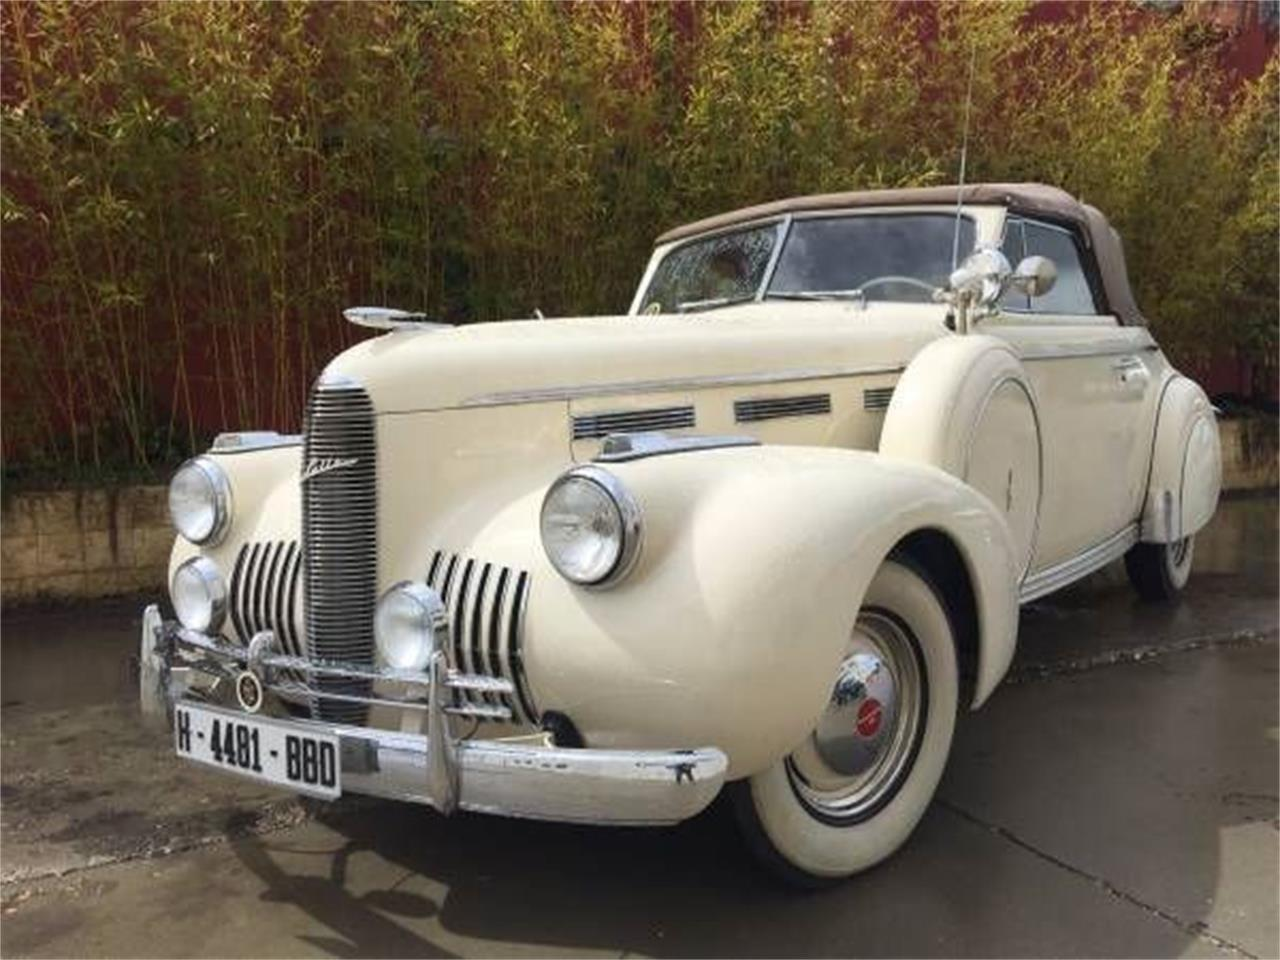 1940 Cadillac LaSalle for Sale | ClassicCars.com | CC-1116259